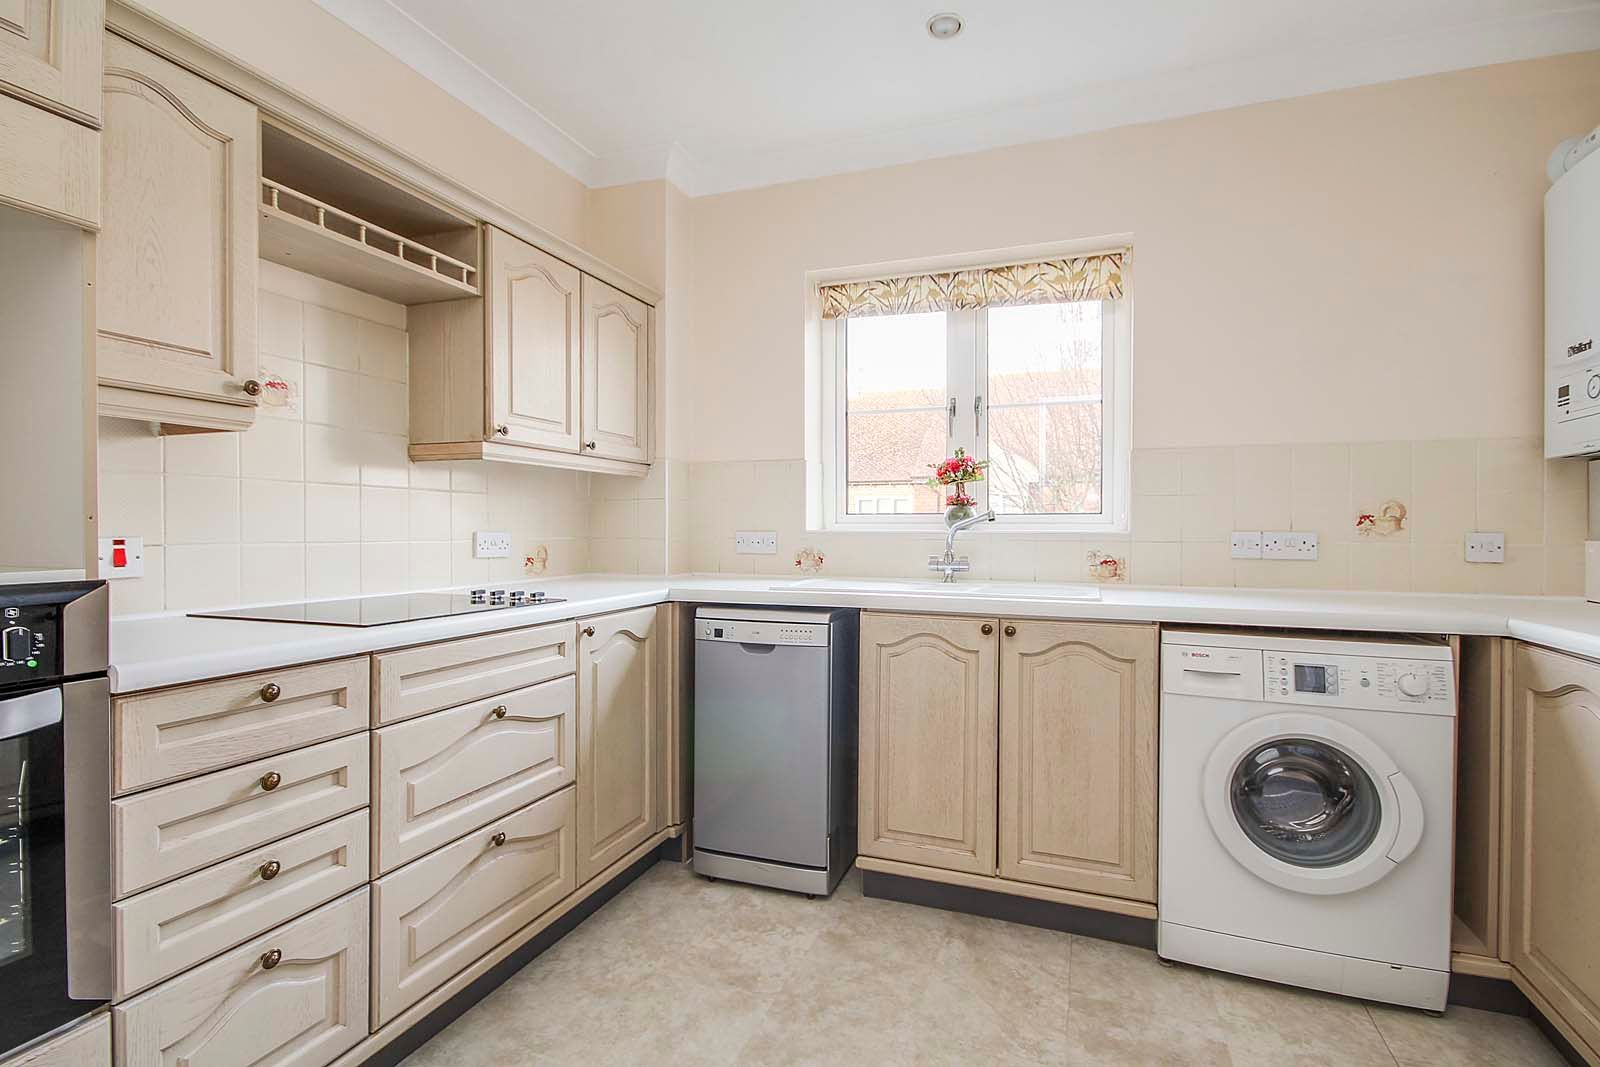 2 bed Apartment for sale in East Preston - Kitchen (Property Image 3)